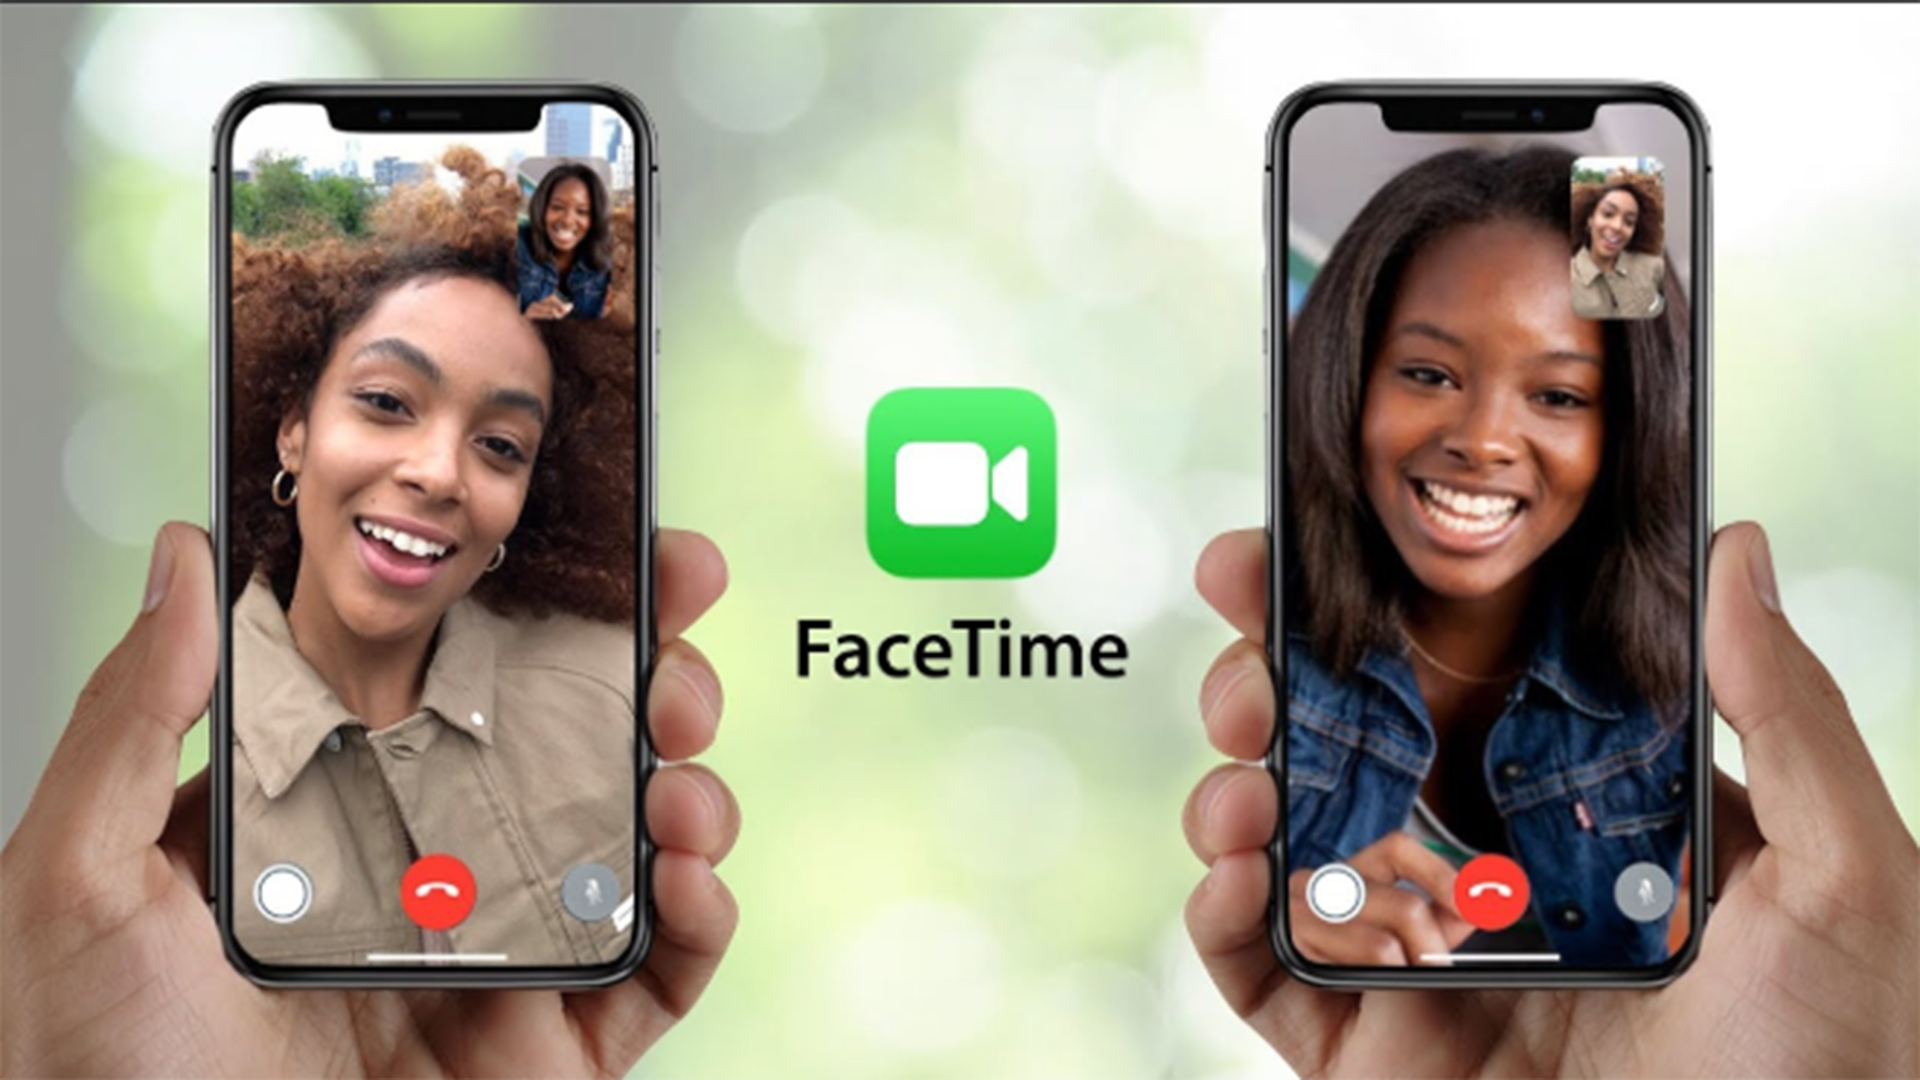 FaceTime video call